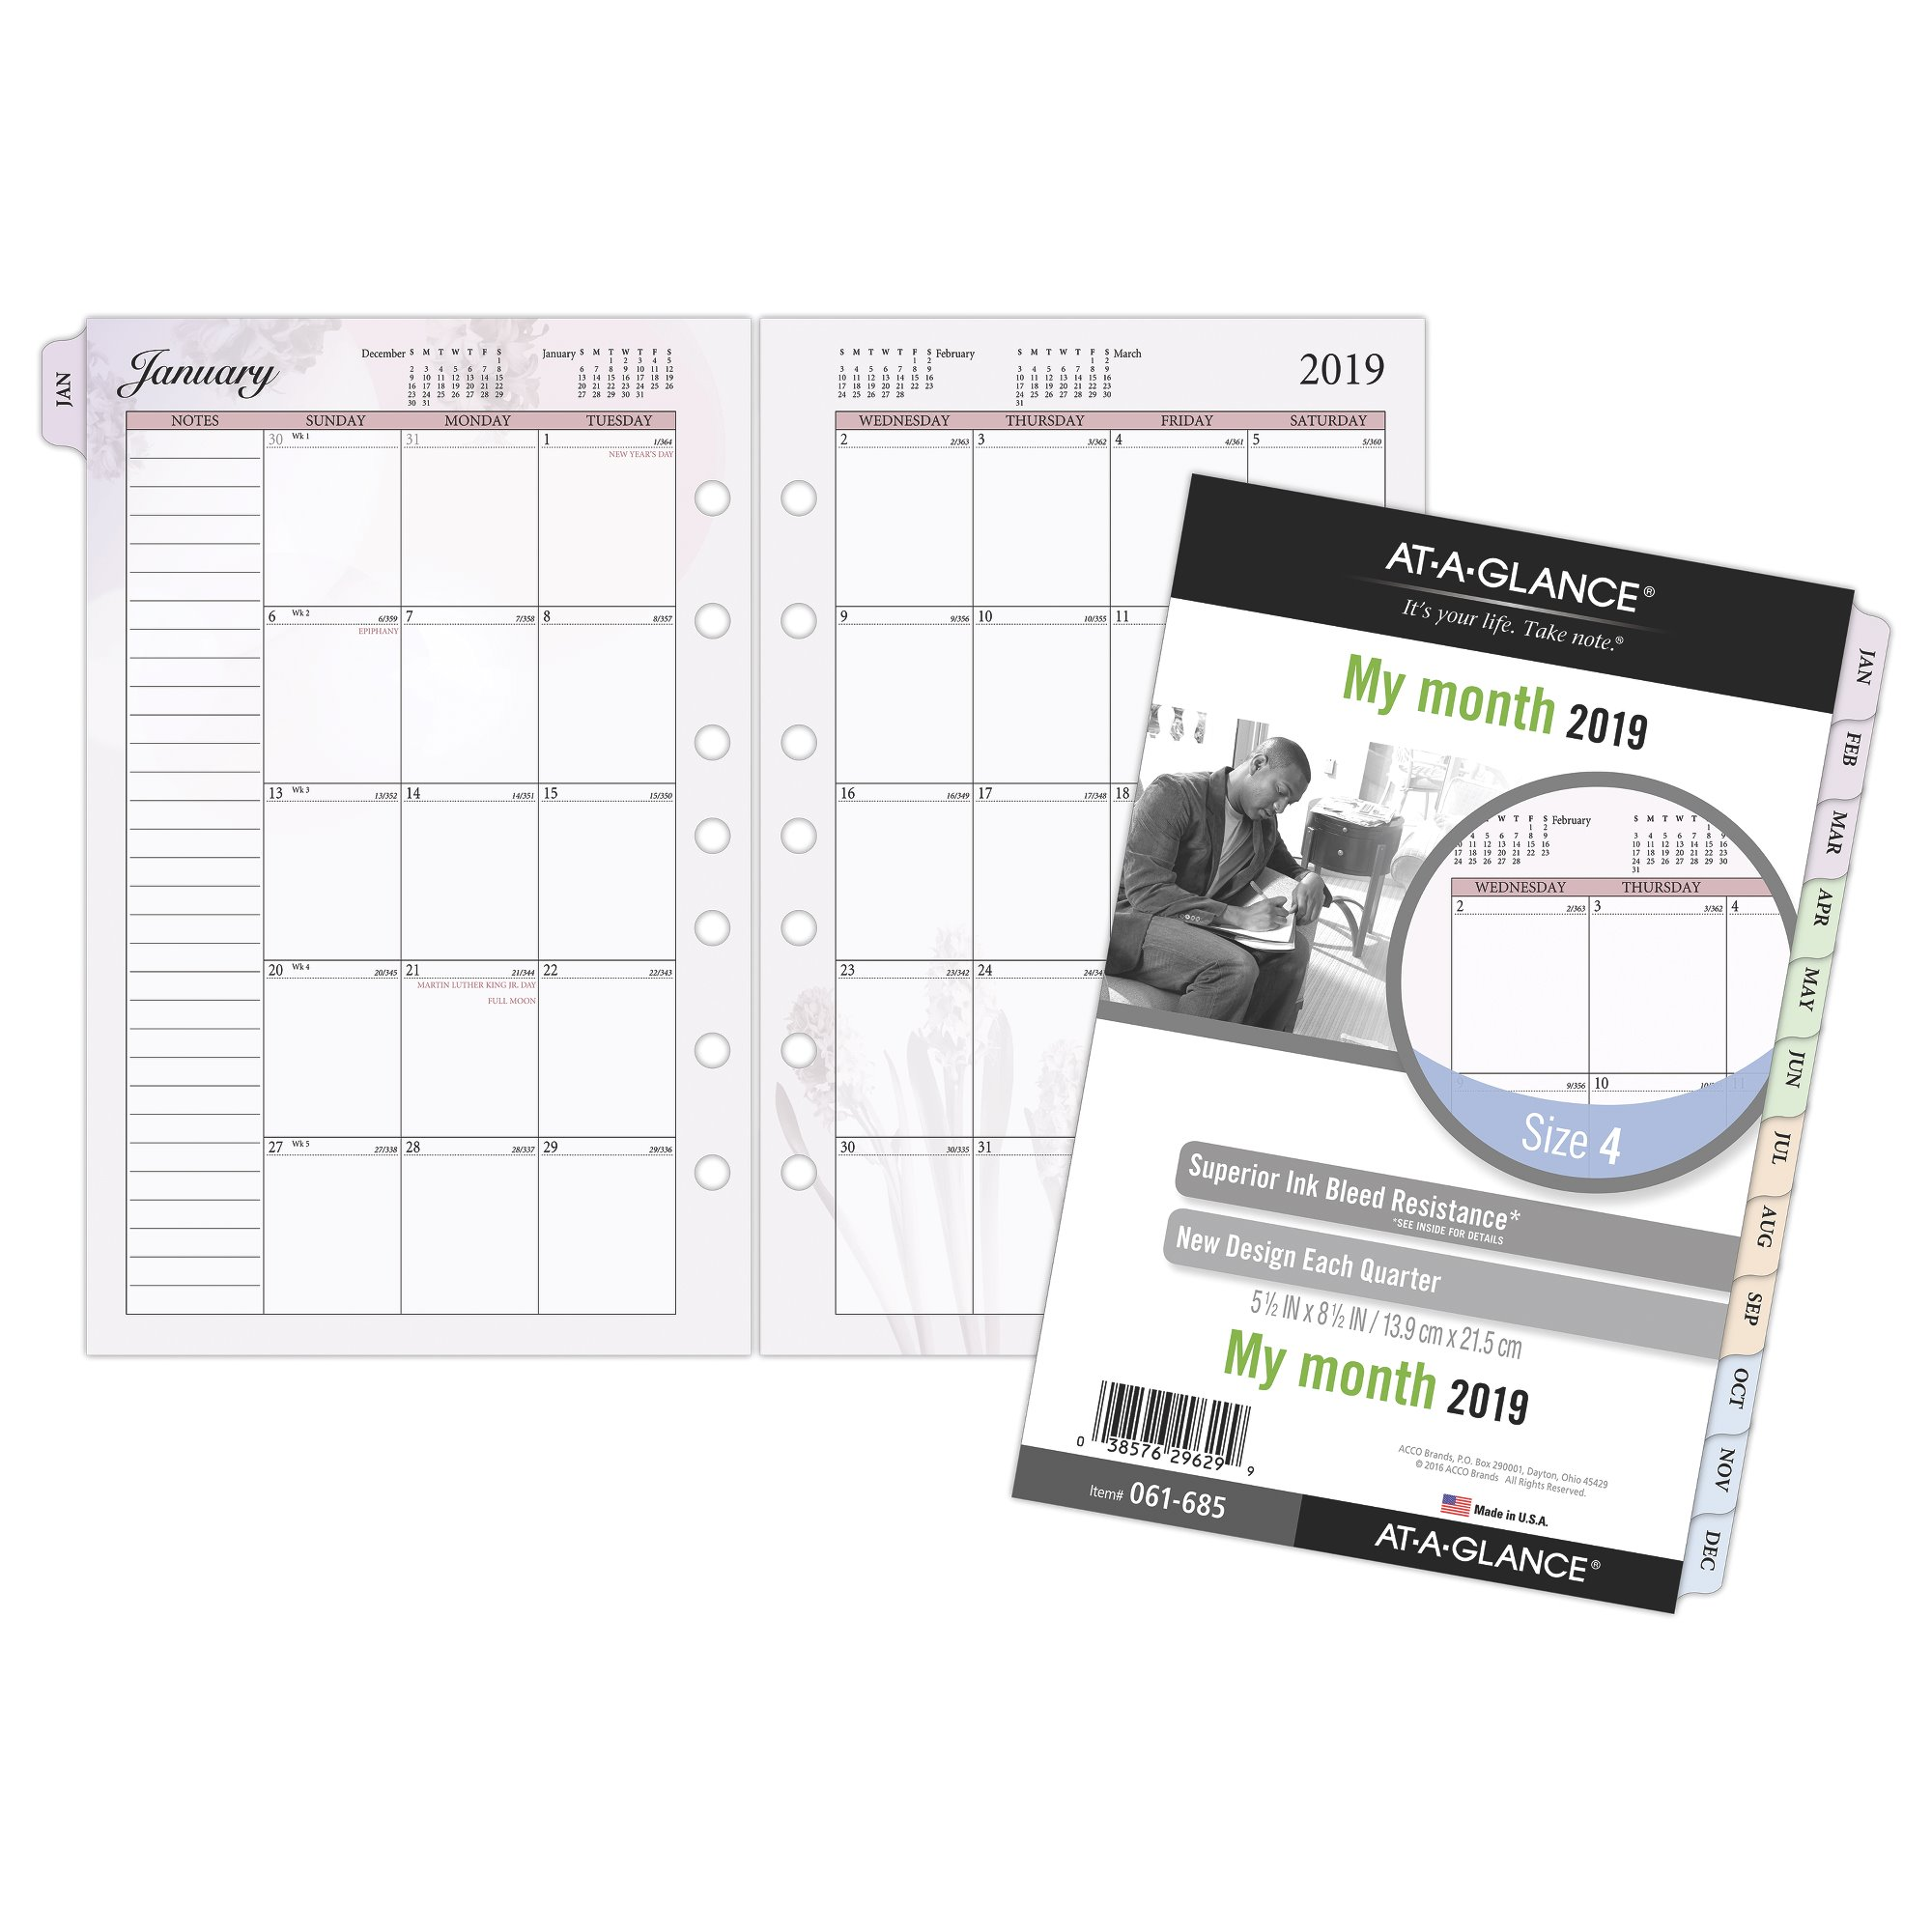 At-A-Glance Day Runner Nature Monthly Planner Refill Size 4 Monthly Planner by AT-A-GLANCE Day Runner